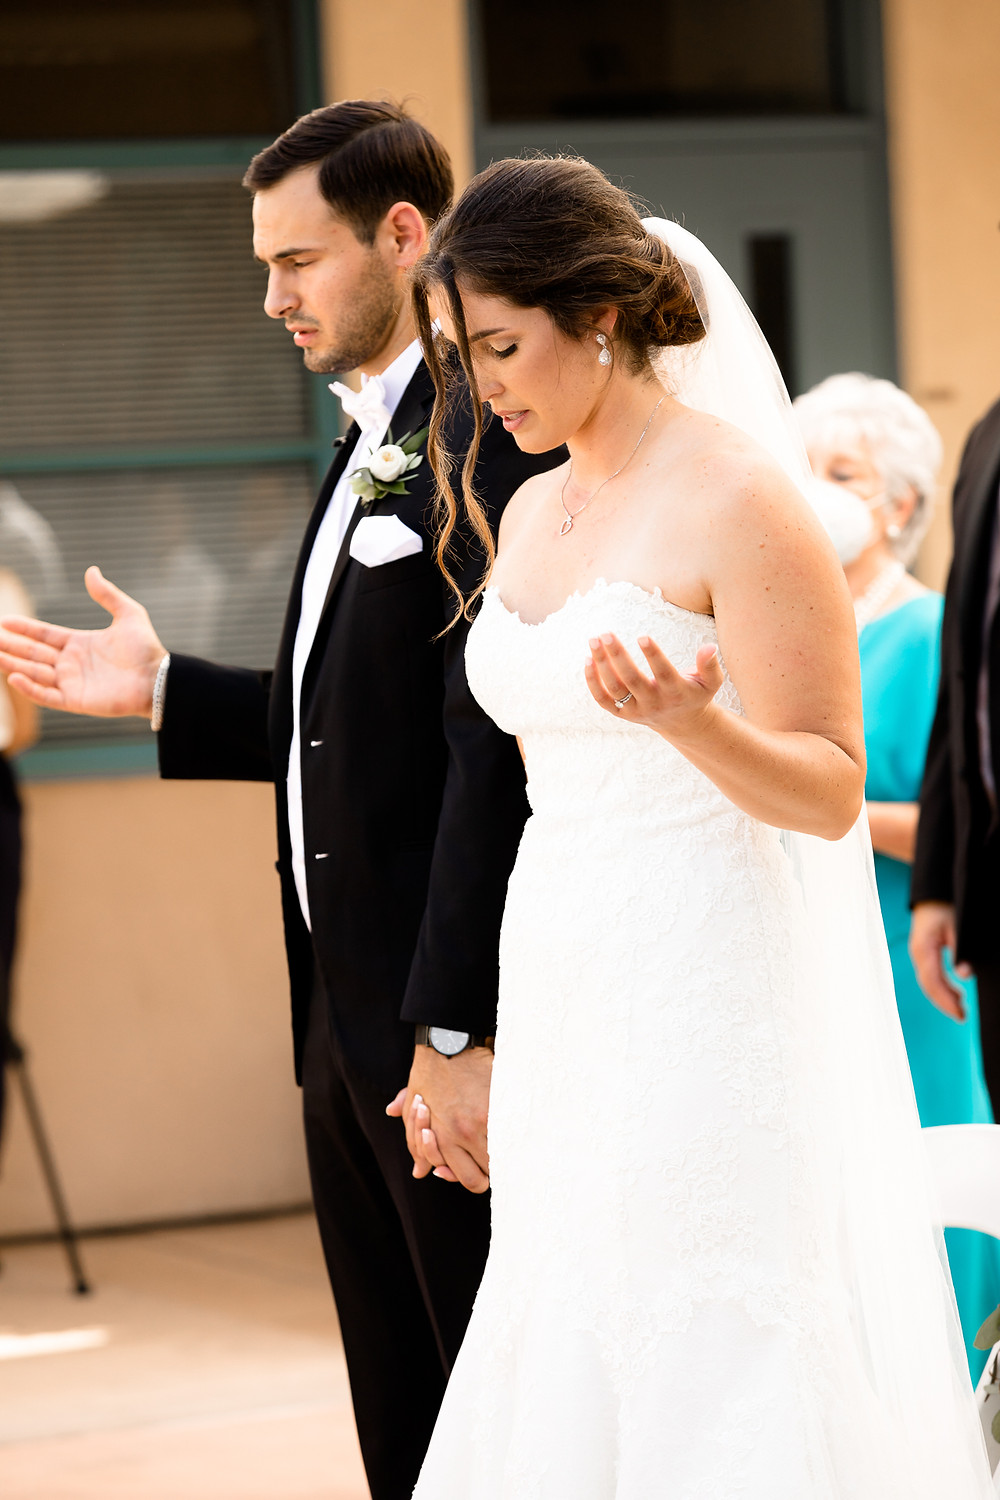 bride and groom lifting hands in prayer during catholic wedding ceremony